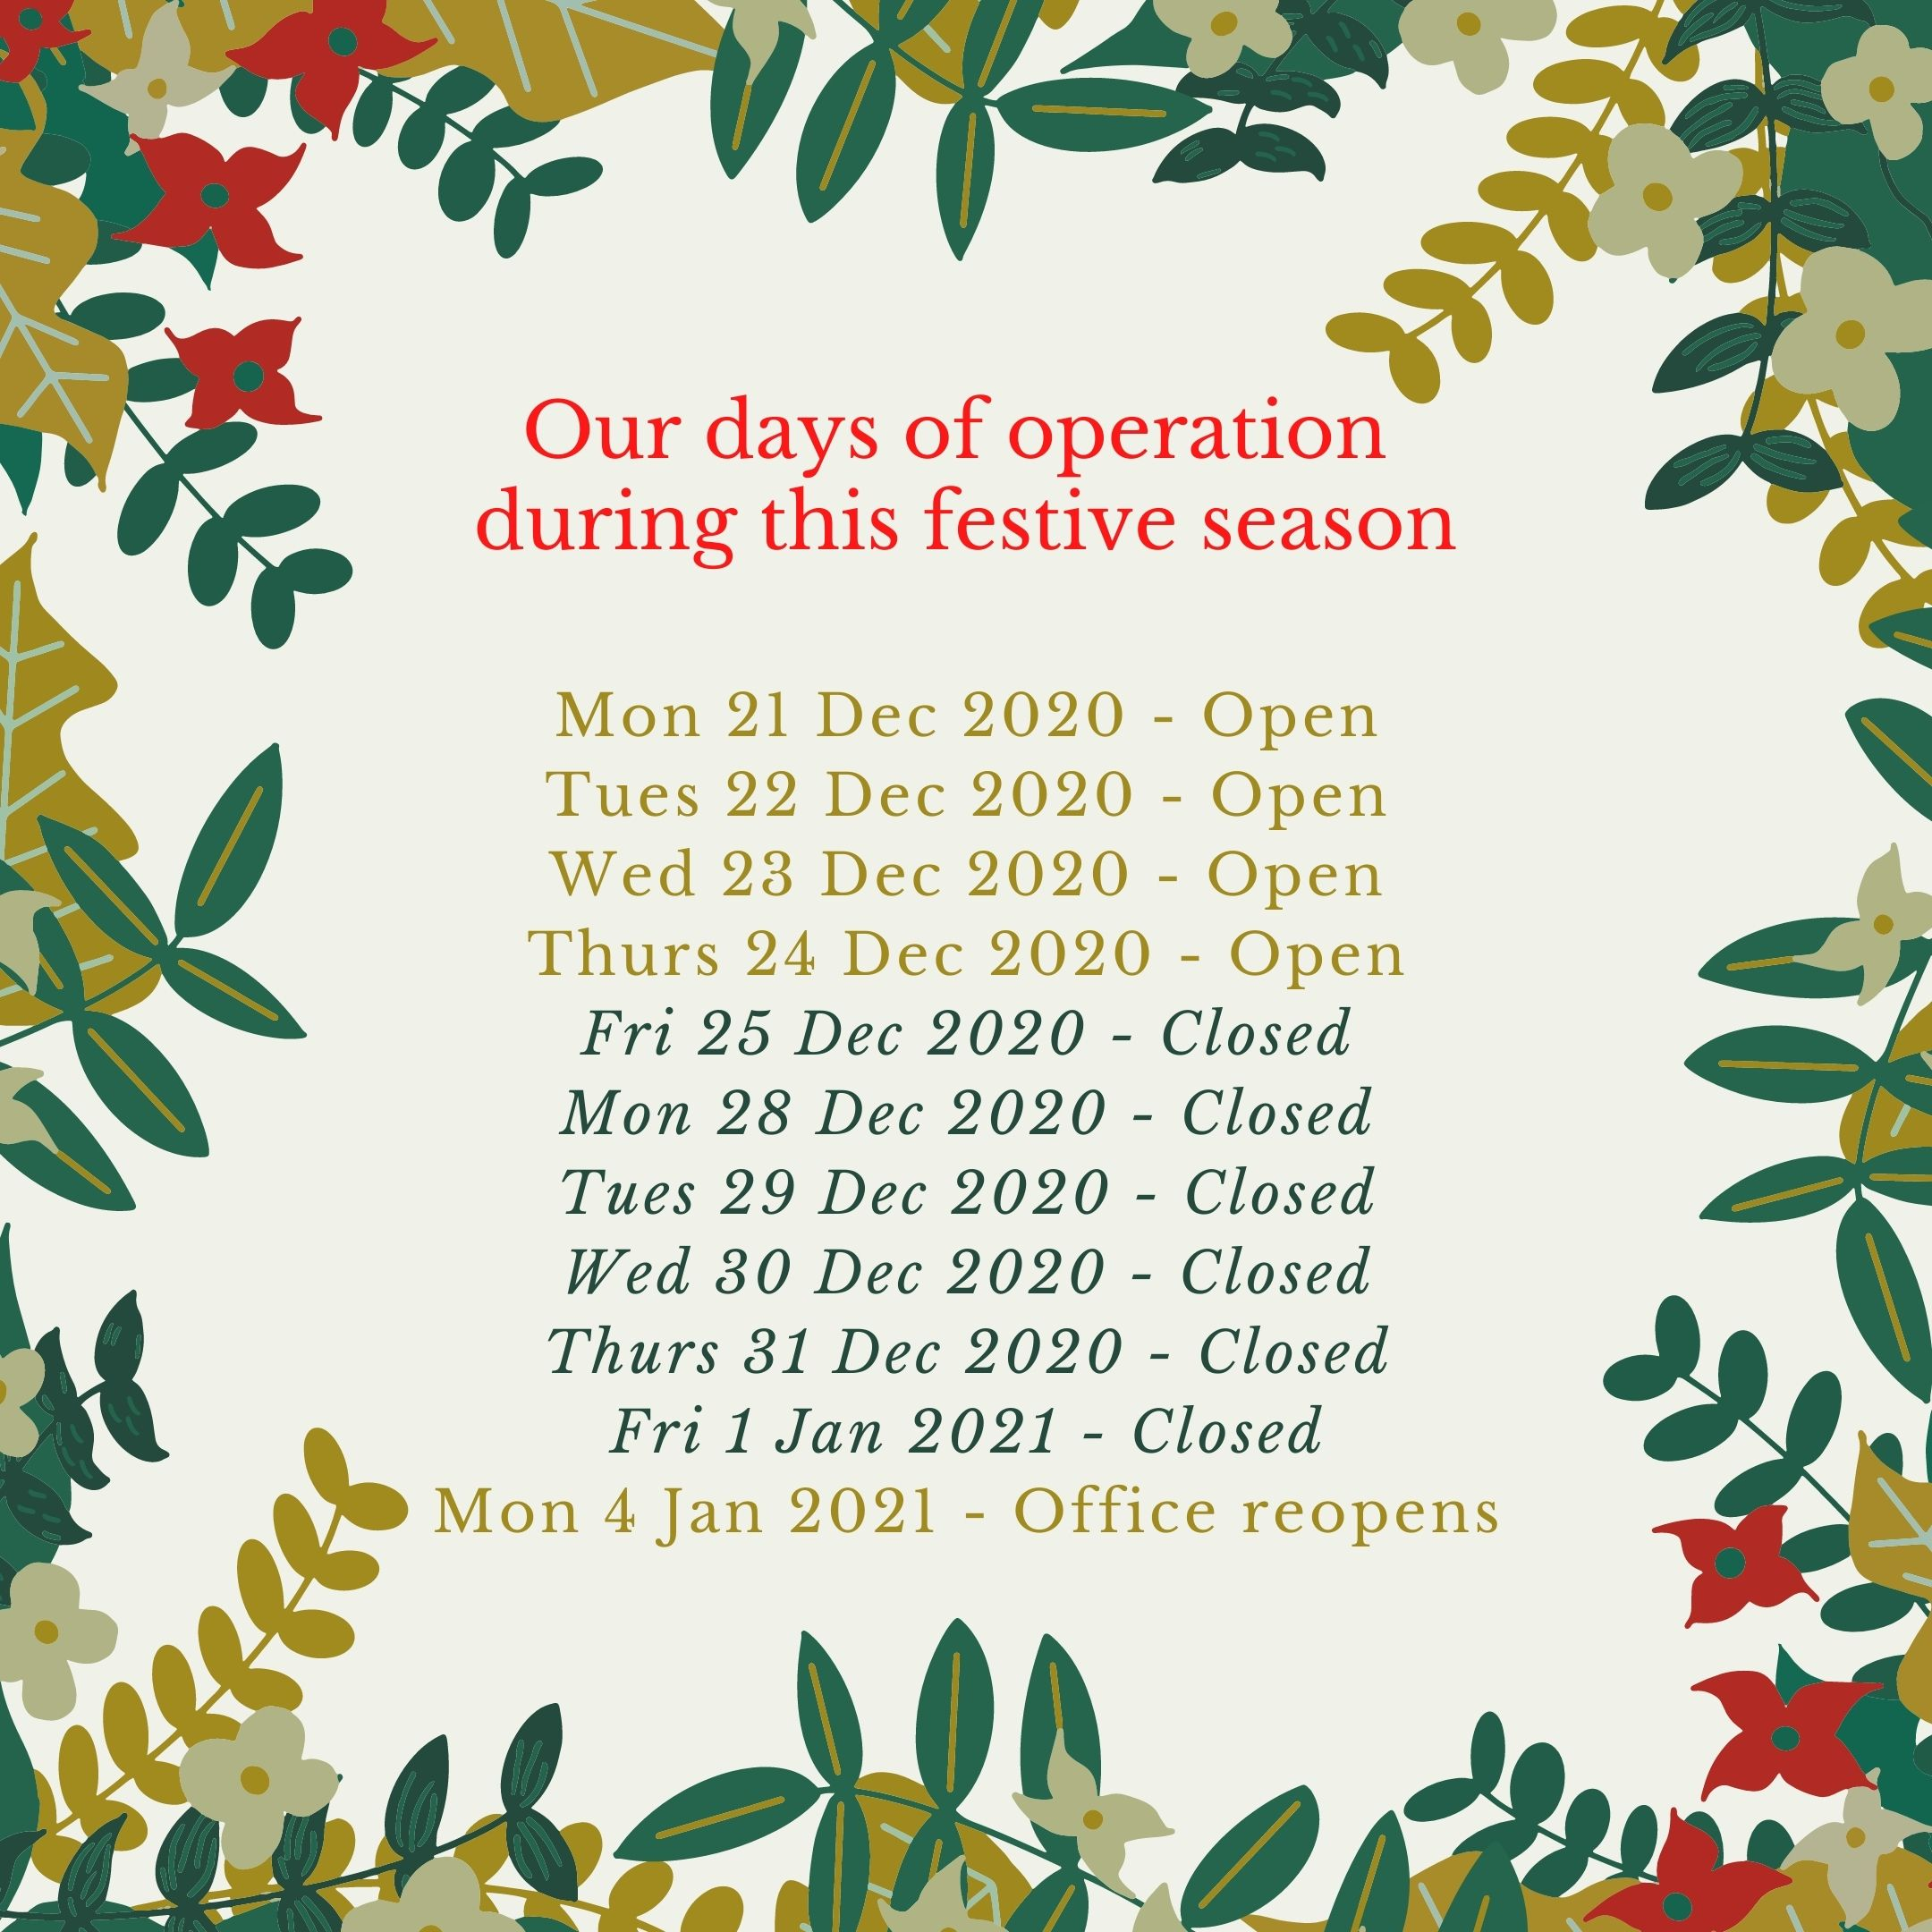 Safe Food festive season closure days of operation